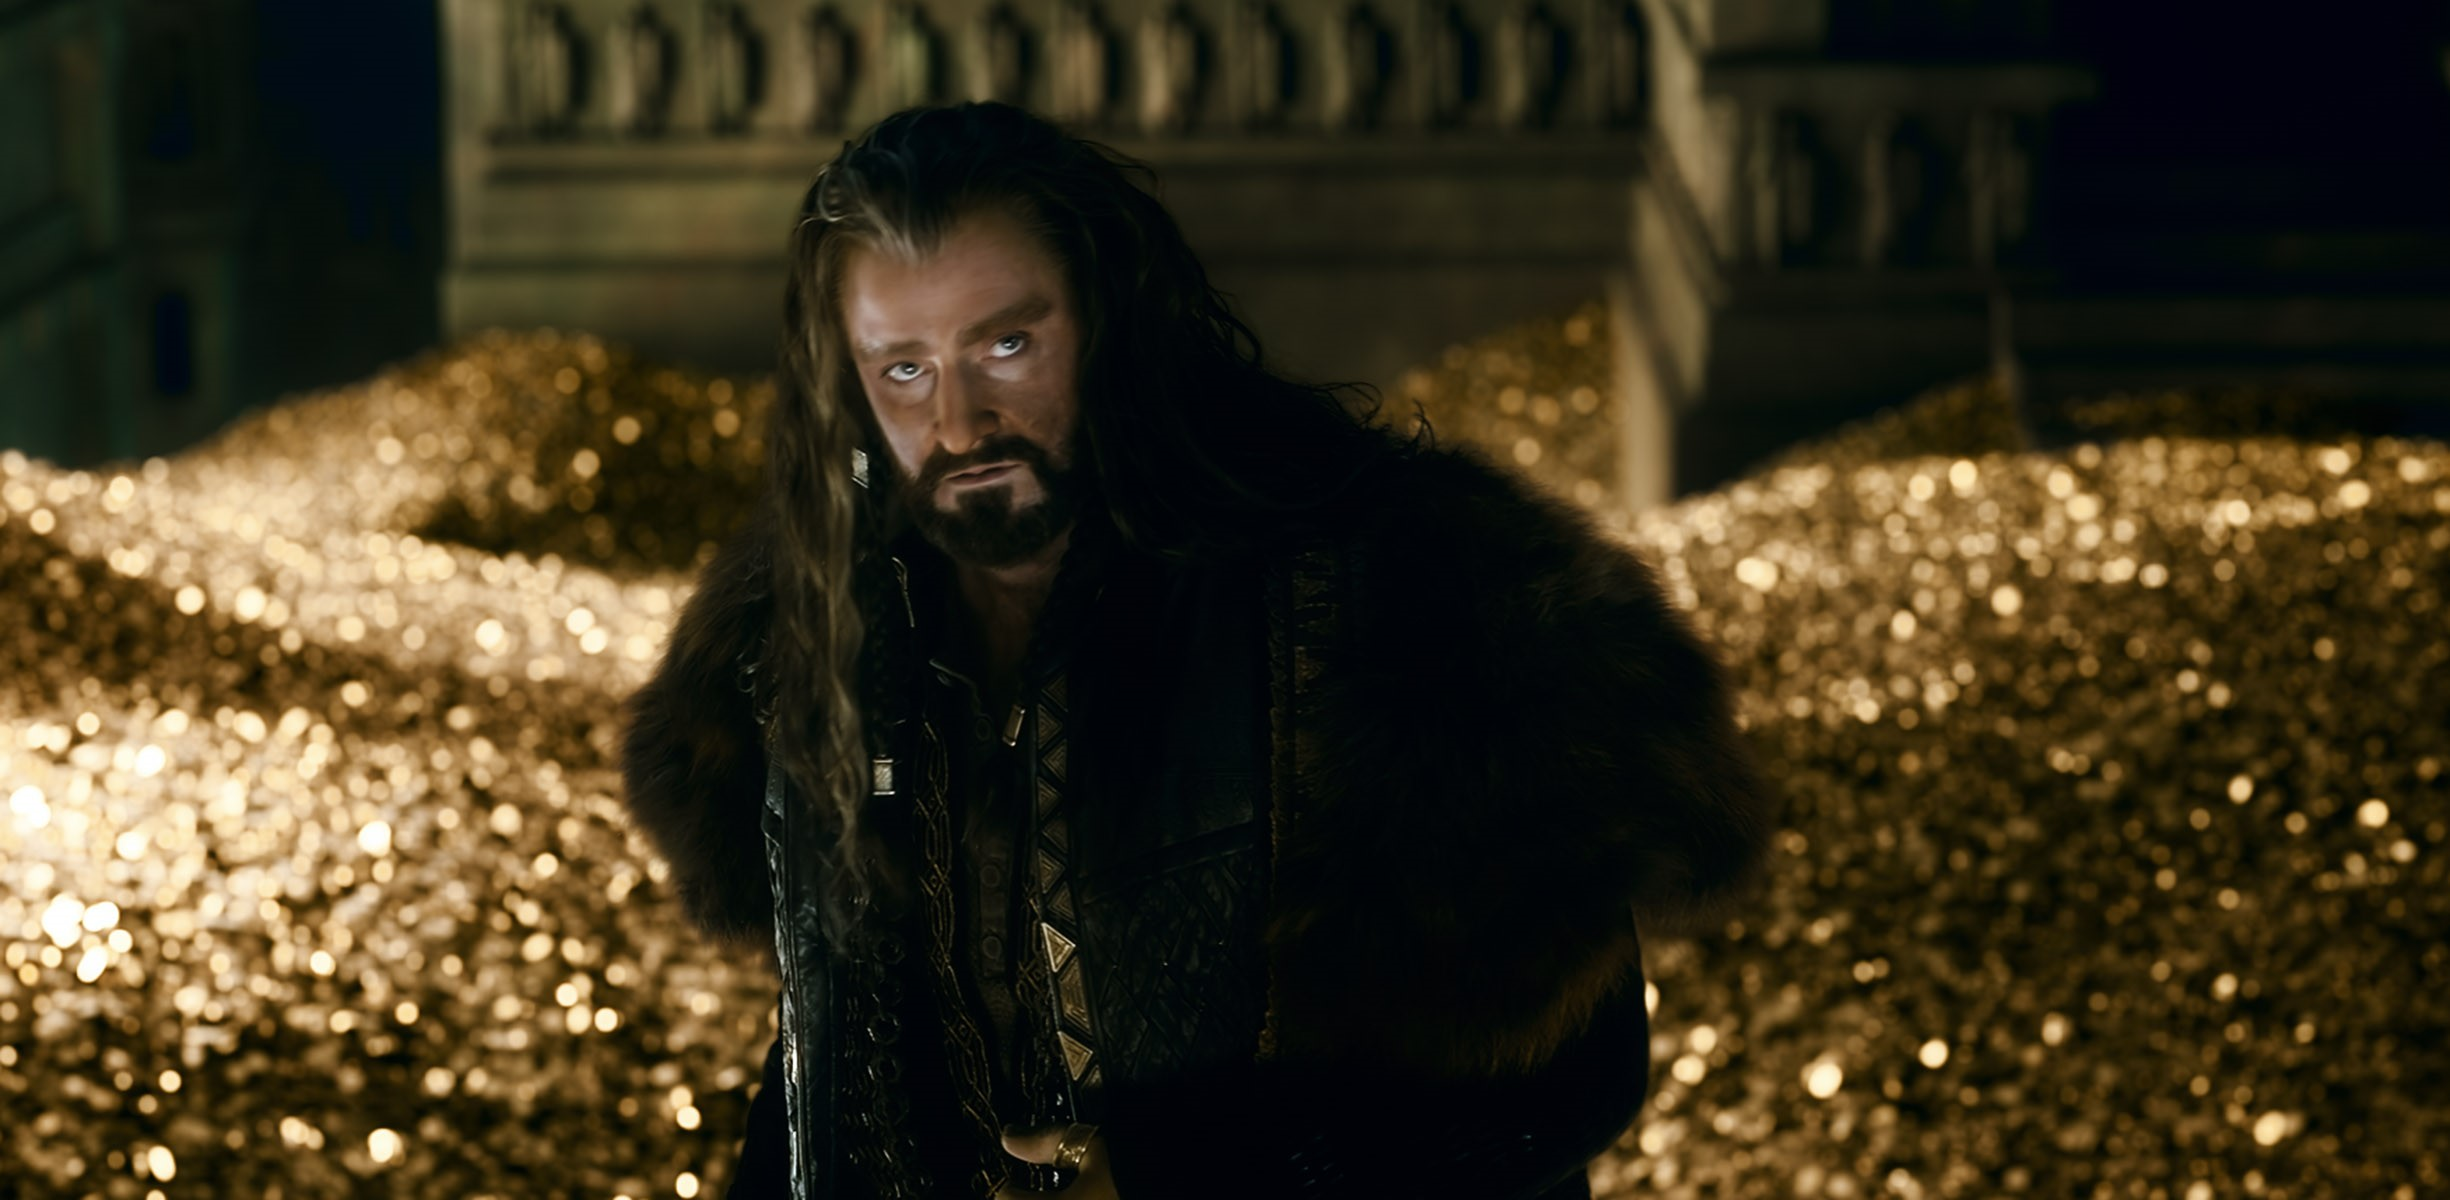 Richard Armitage as Thorin in The Hobbit: The Battle of the Five Armies (2014)